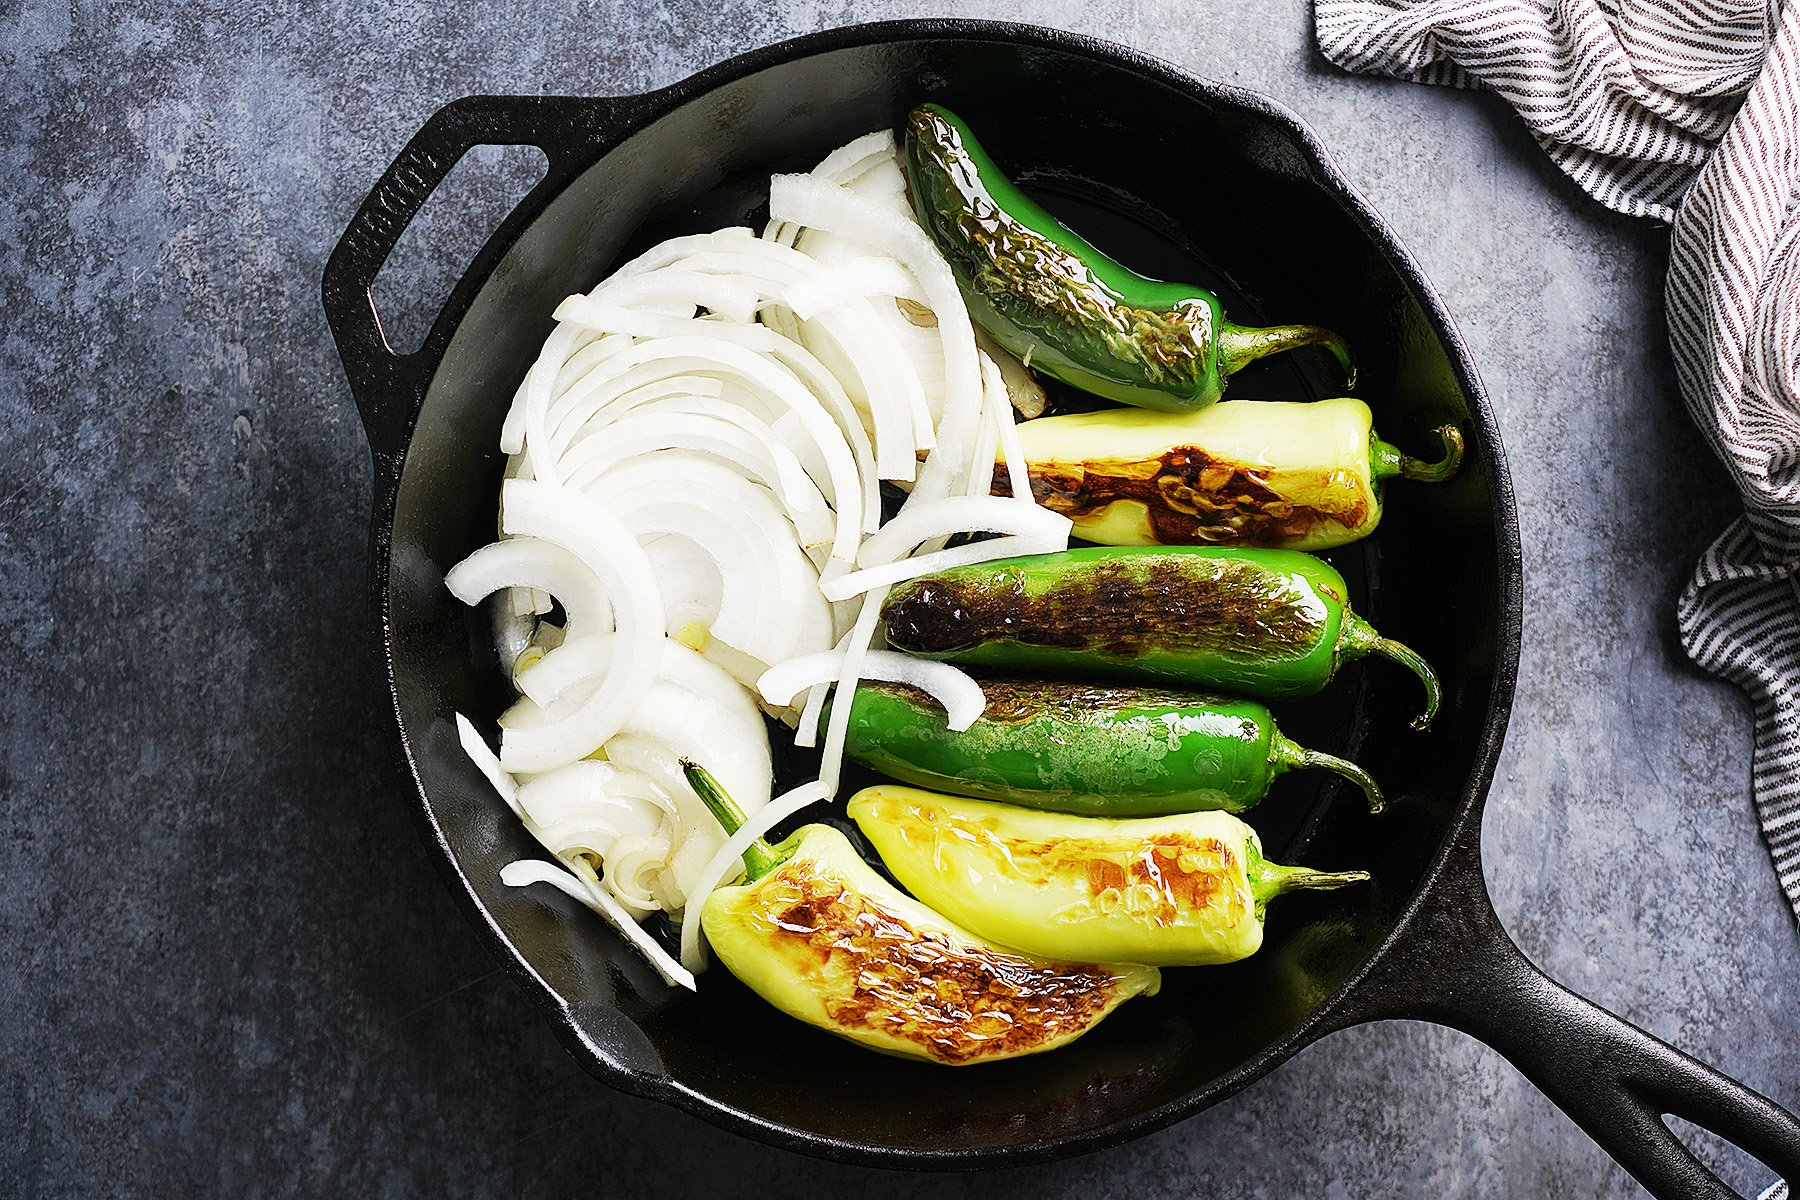 an iron skillet with fried jalapeños and raw onion slices